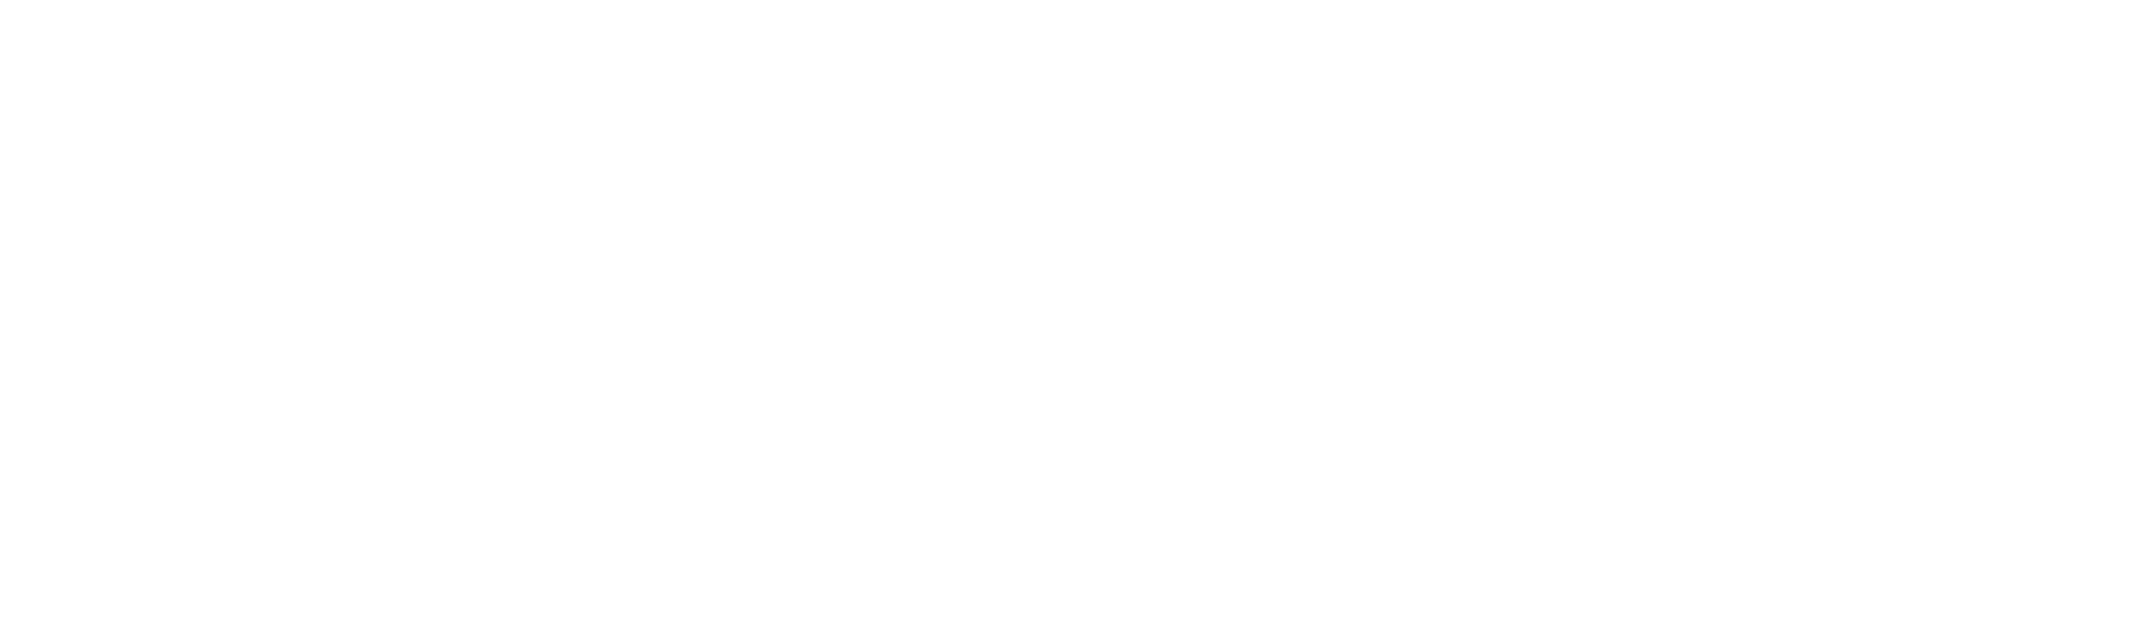 Steele Coaching Group